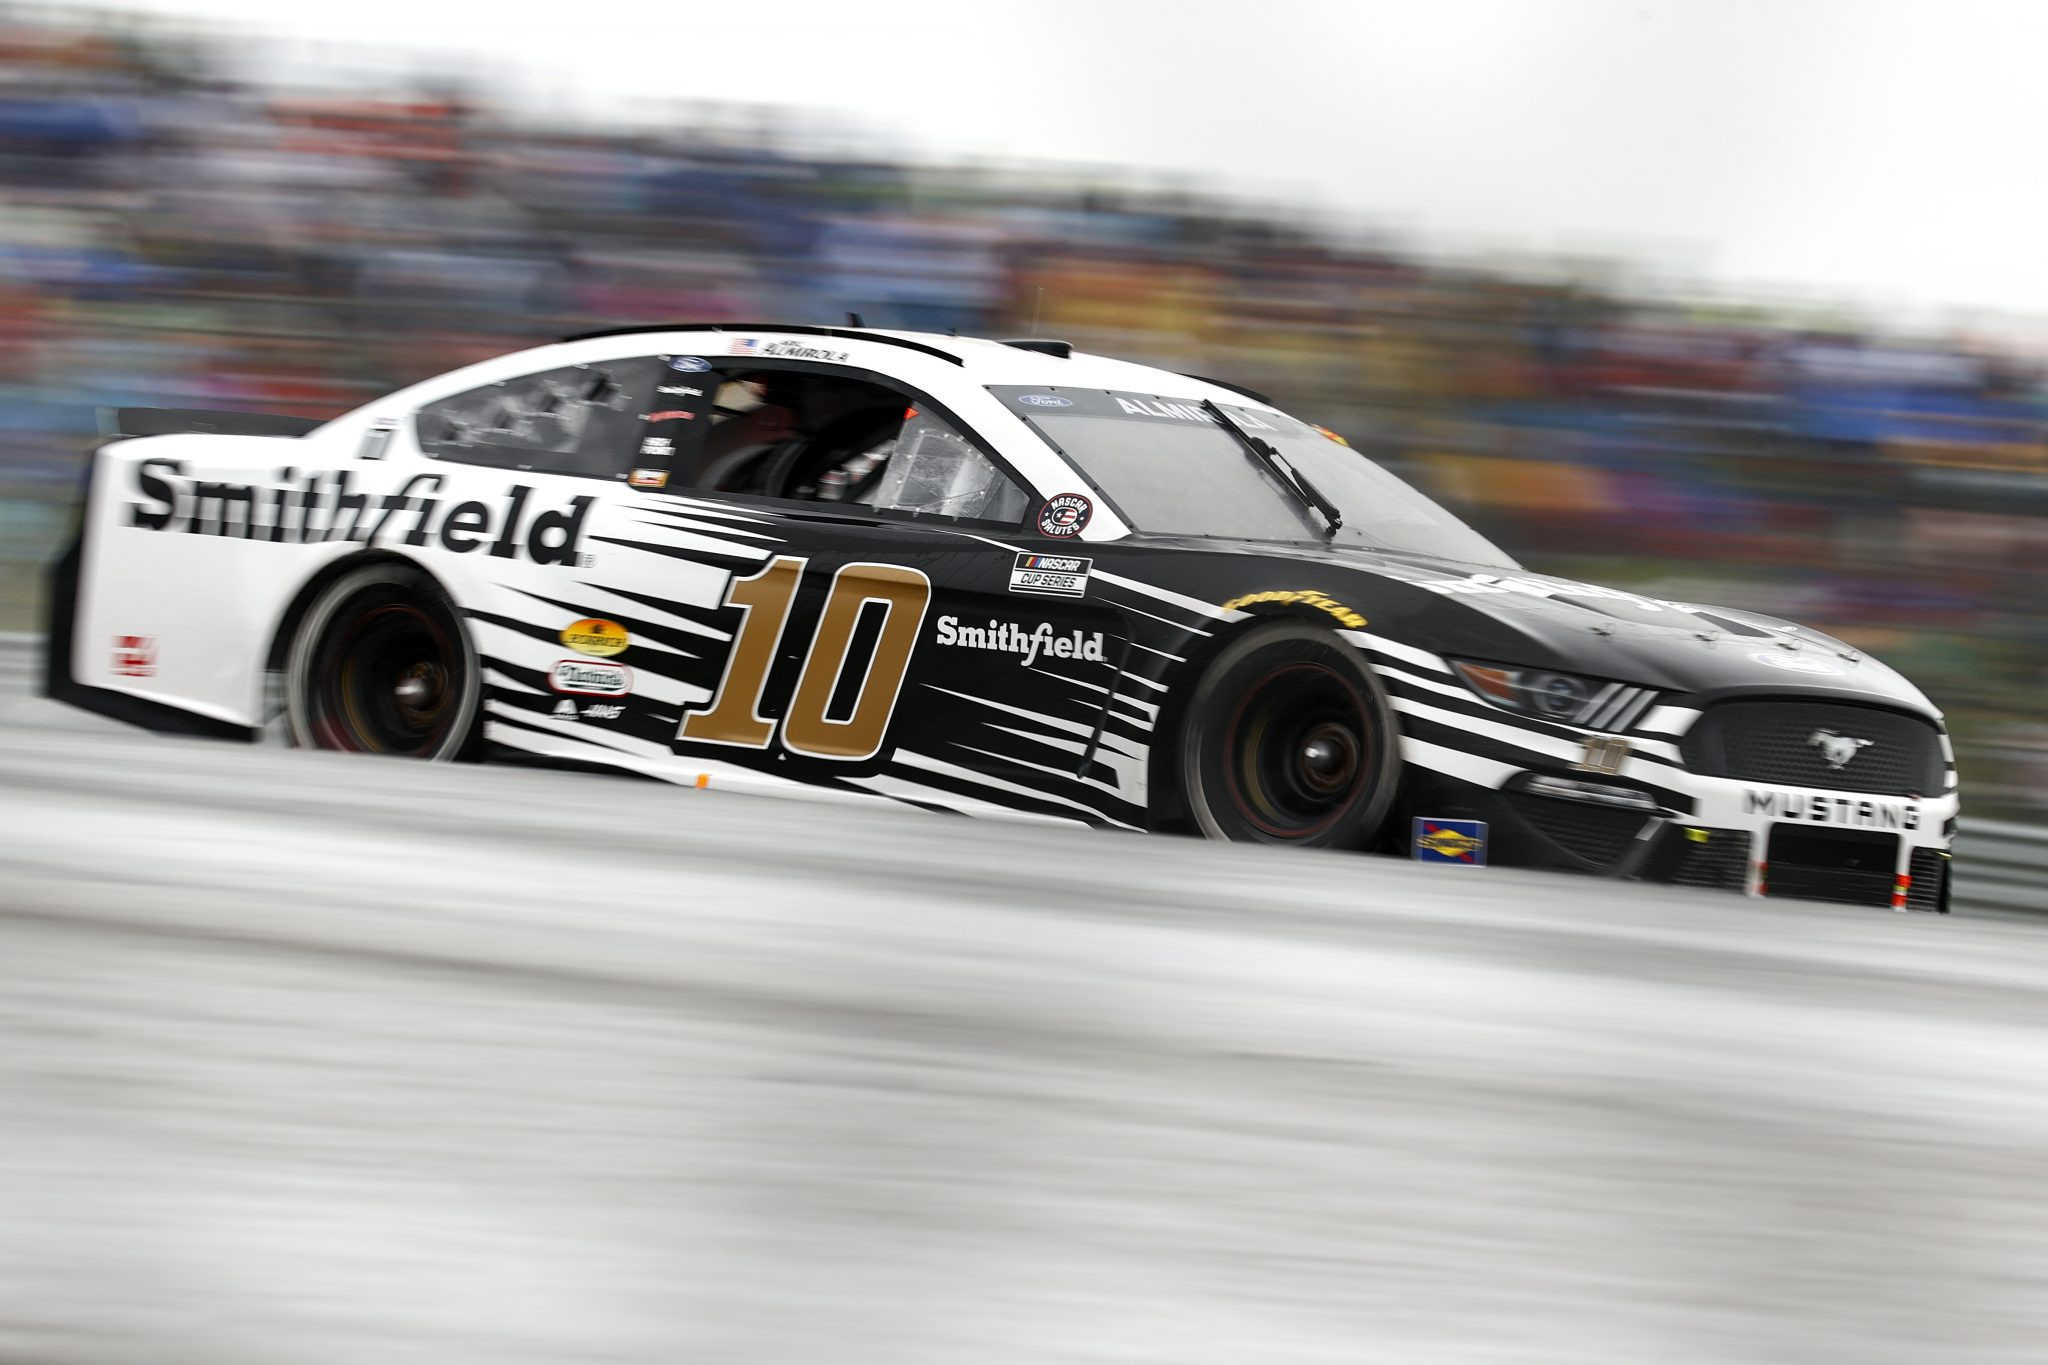 AUSTIN, TEXAS - MAY 23: Aric Almirola, driver of the #10 Smithfield Ford, drives during the NASCAR Cup Series EchoPark Texas Grand Prix at Circuit of The Americas on May 23, 2021 in Austin, Texas. (Photo by Jared C. Tilton/Getty Images)   Getty Images